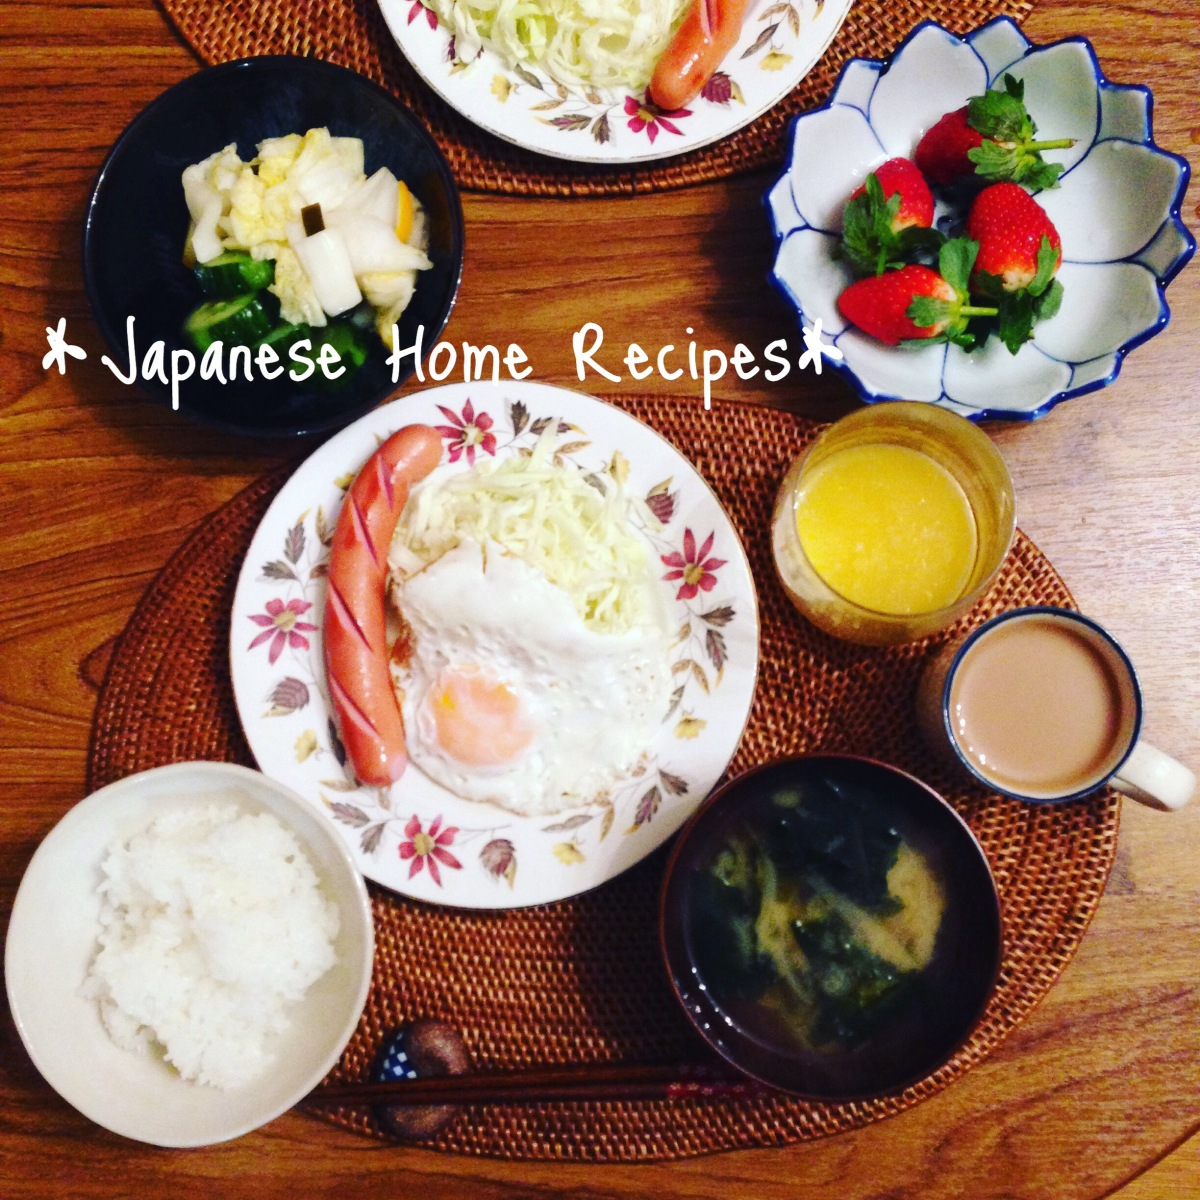 About Japanese Breakfast